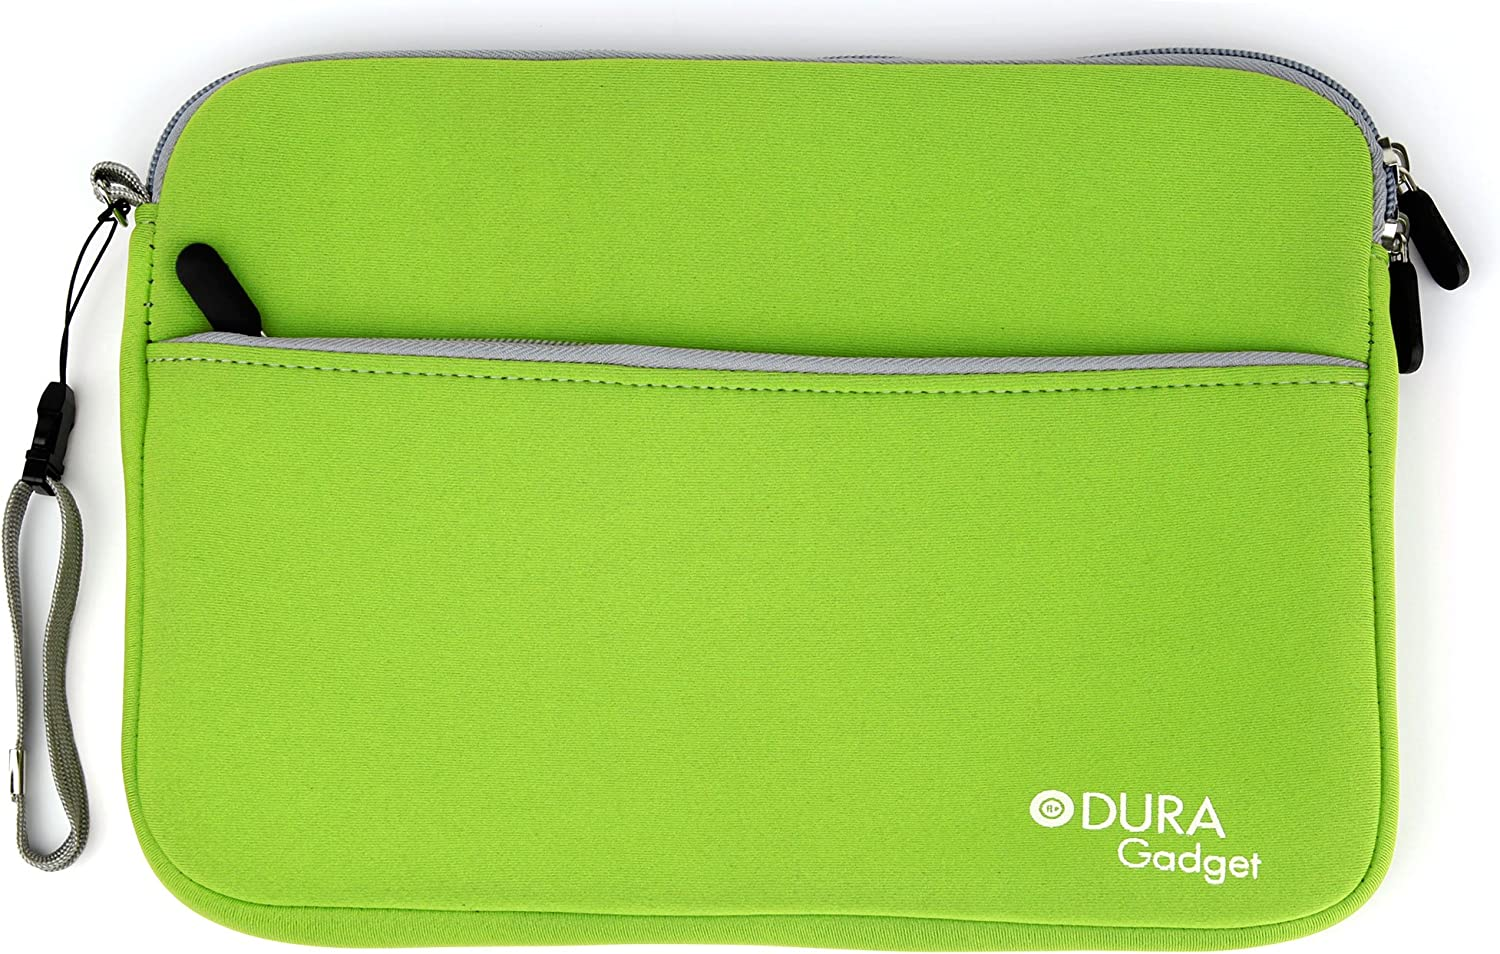 DURAGADGET Lime Green Water Resistant Neoprene Case/Cover for The Acer Iconia One 10 (B3-A40)